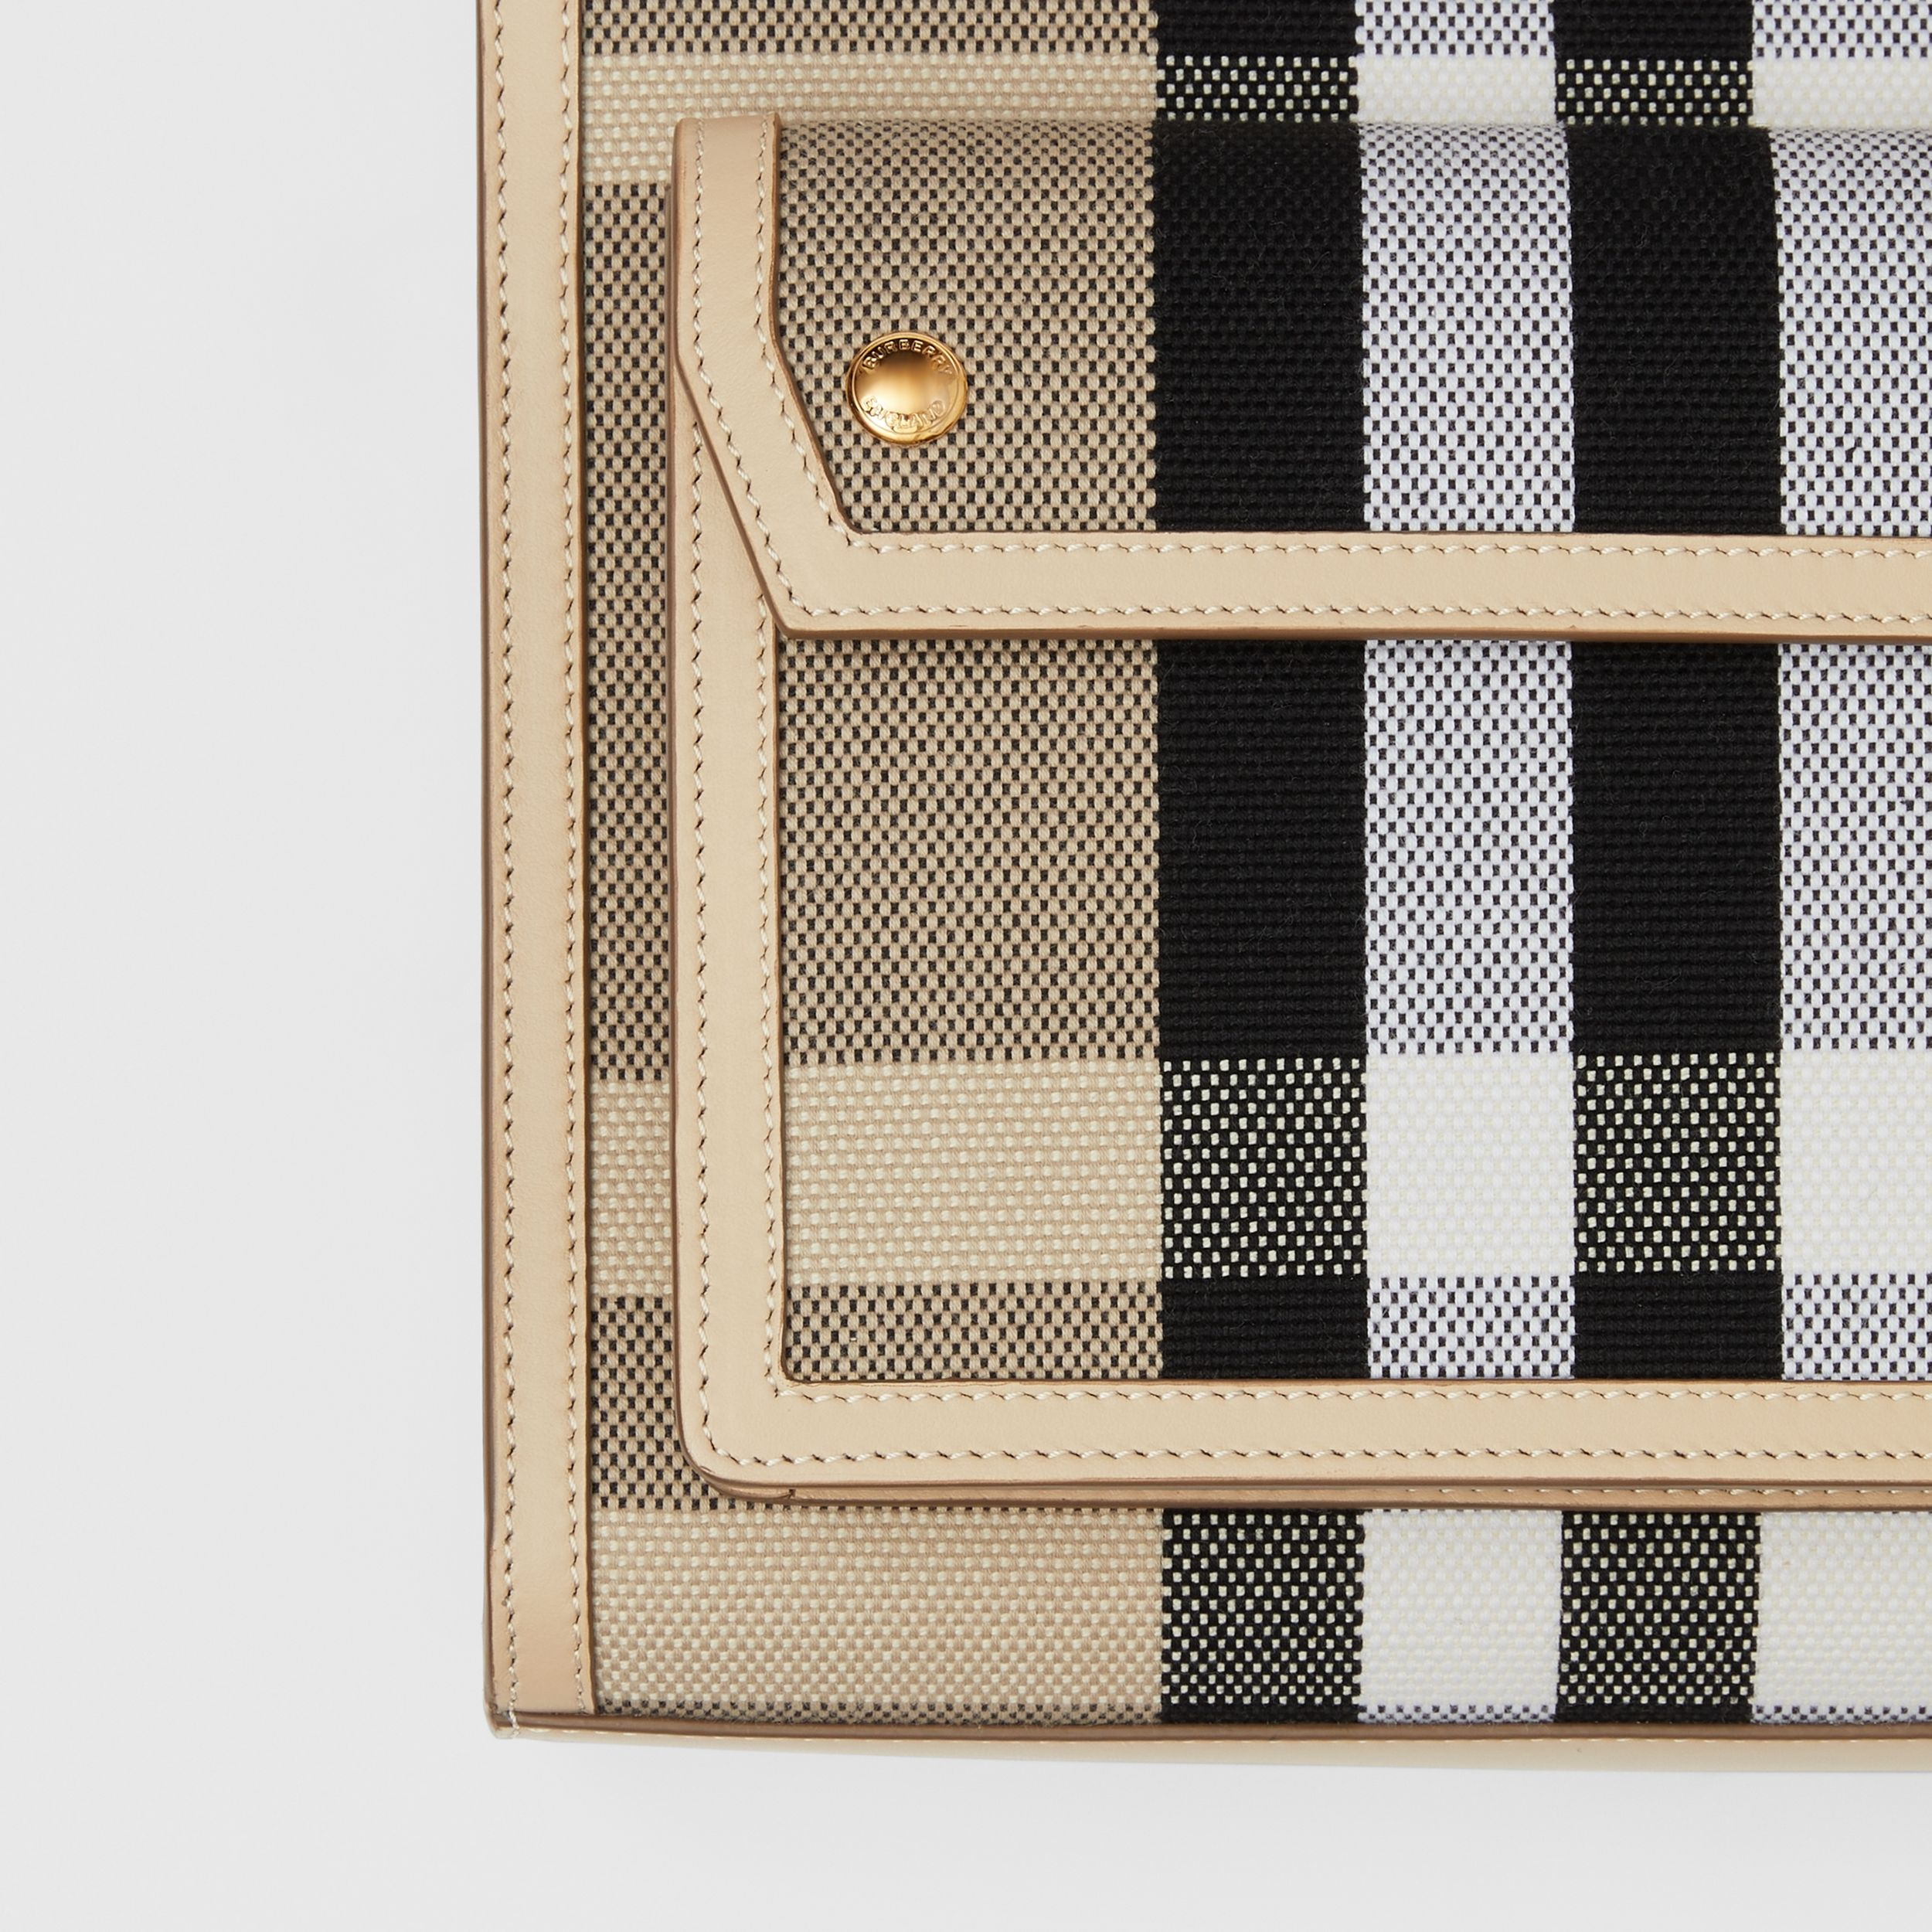 Mini Check Canvas and Leather Pocket Bag in Dusty Sand/soft Fawn - Women | Burberry Singapore - 2